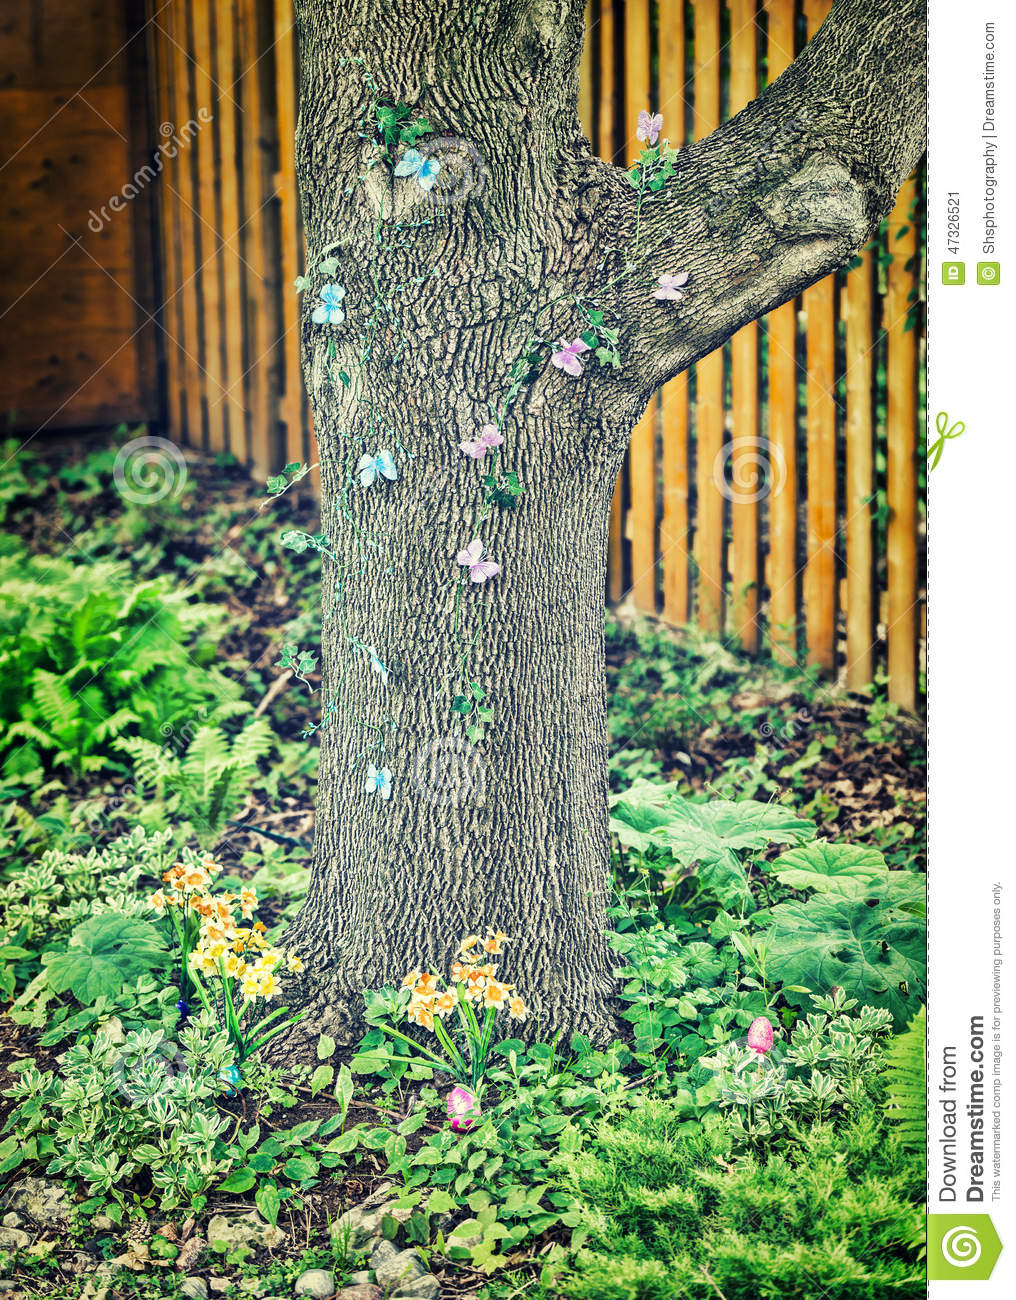 Easter Egg Hunt In A Garden Stock Image - Image of eggs, meadow ...